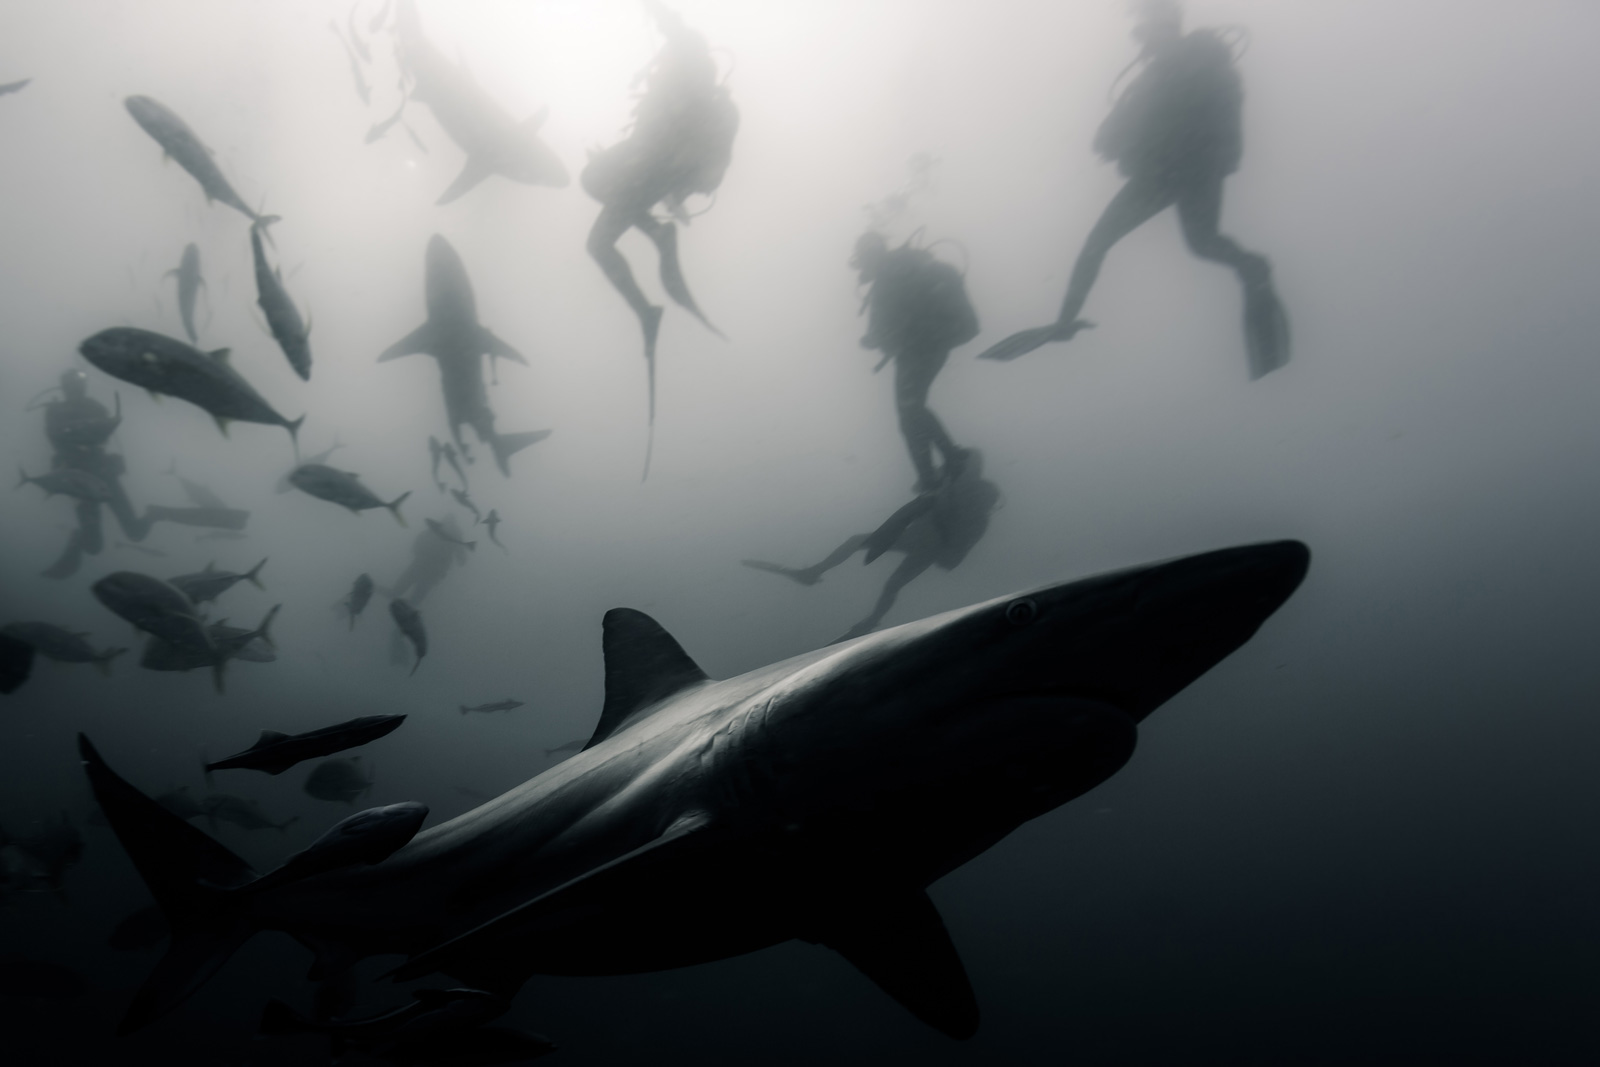 """Shadows in the water"" at the Aliwal Shoal, South Africa ©Christophe Lapeze"